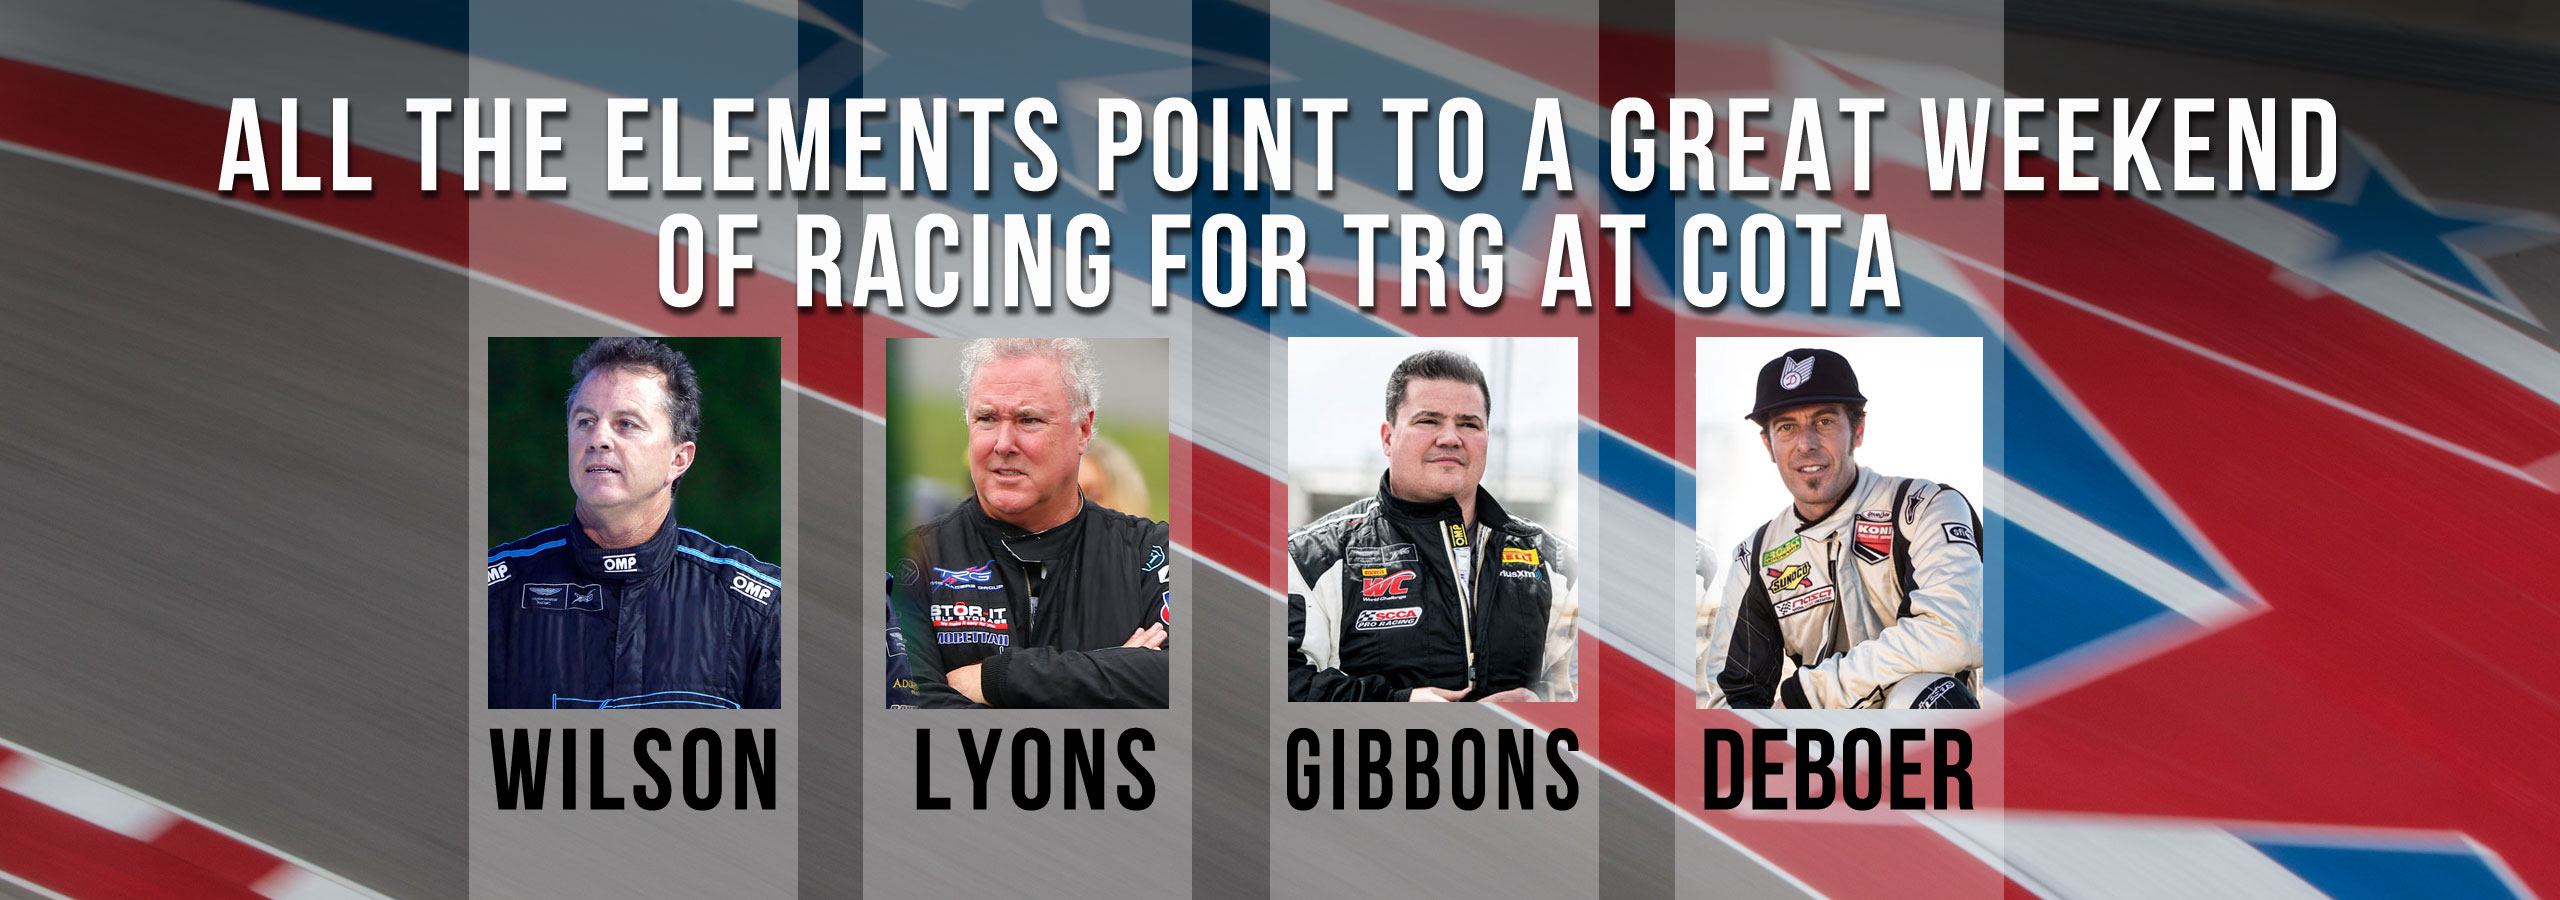 All the Elements Point to a Great Weekend of Racing for TRG at COTA